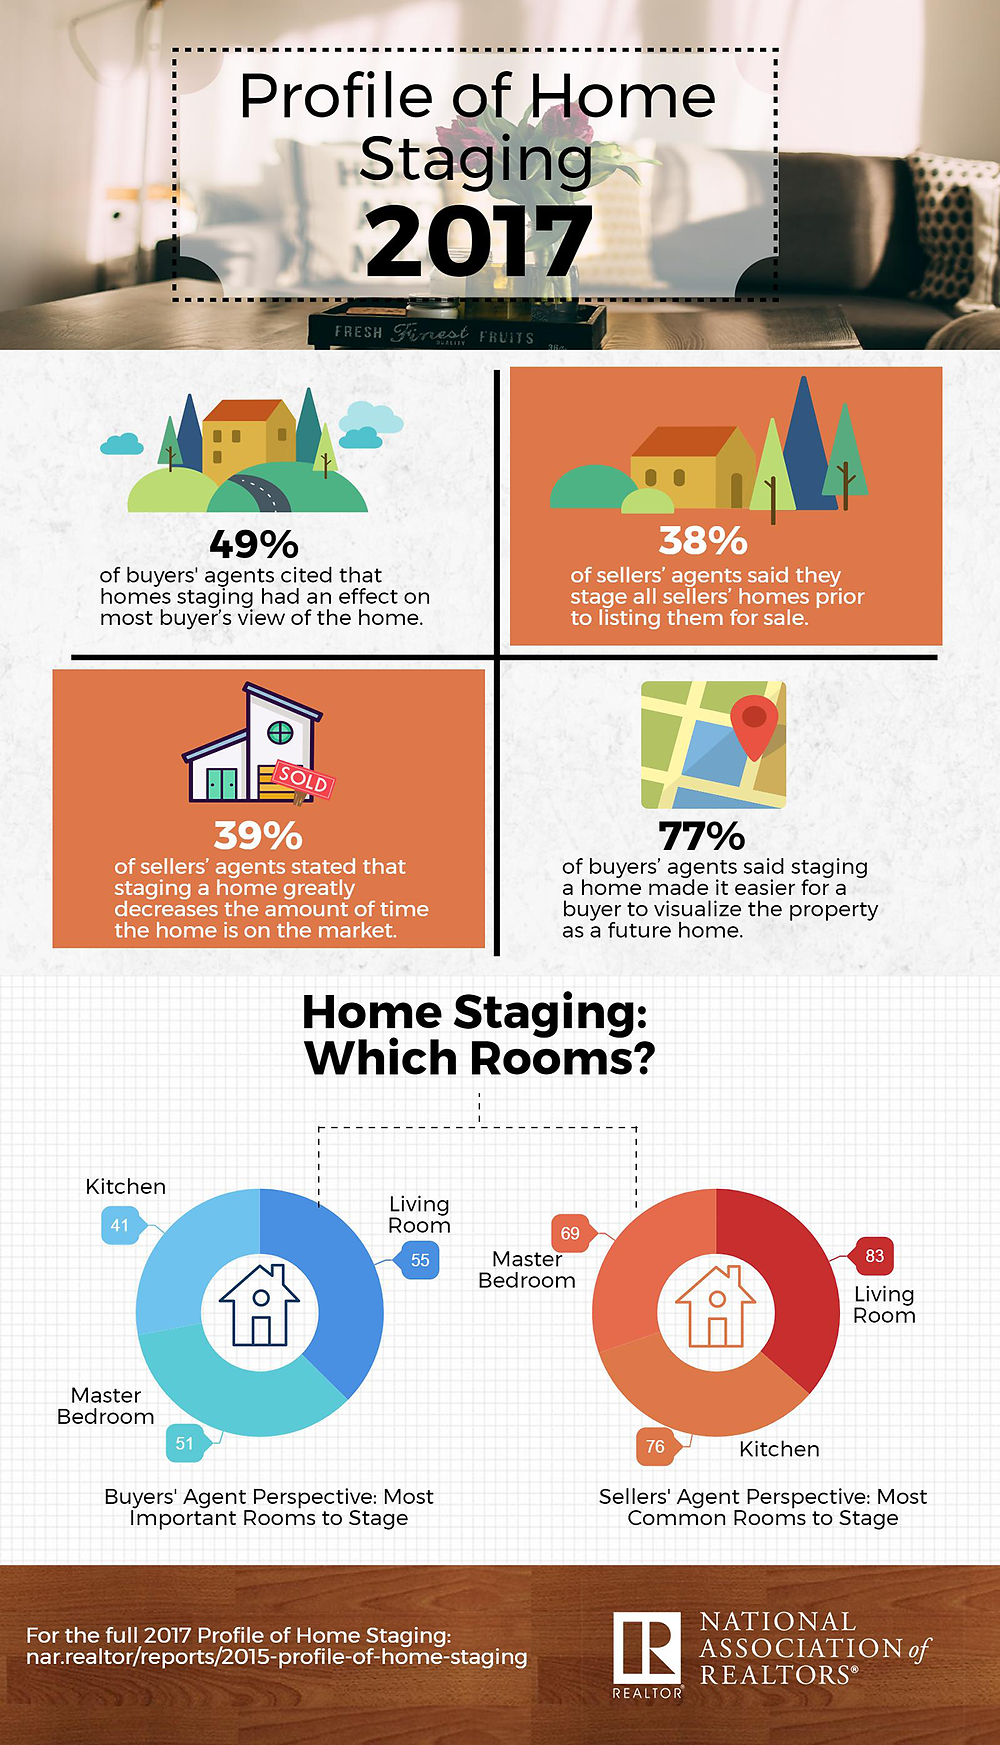 source: https://www.nar.realtor/infographics/2017-profile-of-home-staging?om_rid=AALybF&om_mid=_BZcQvIB9d15w2j&om_ntype=NARWeekly